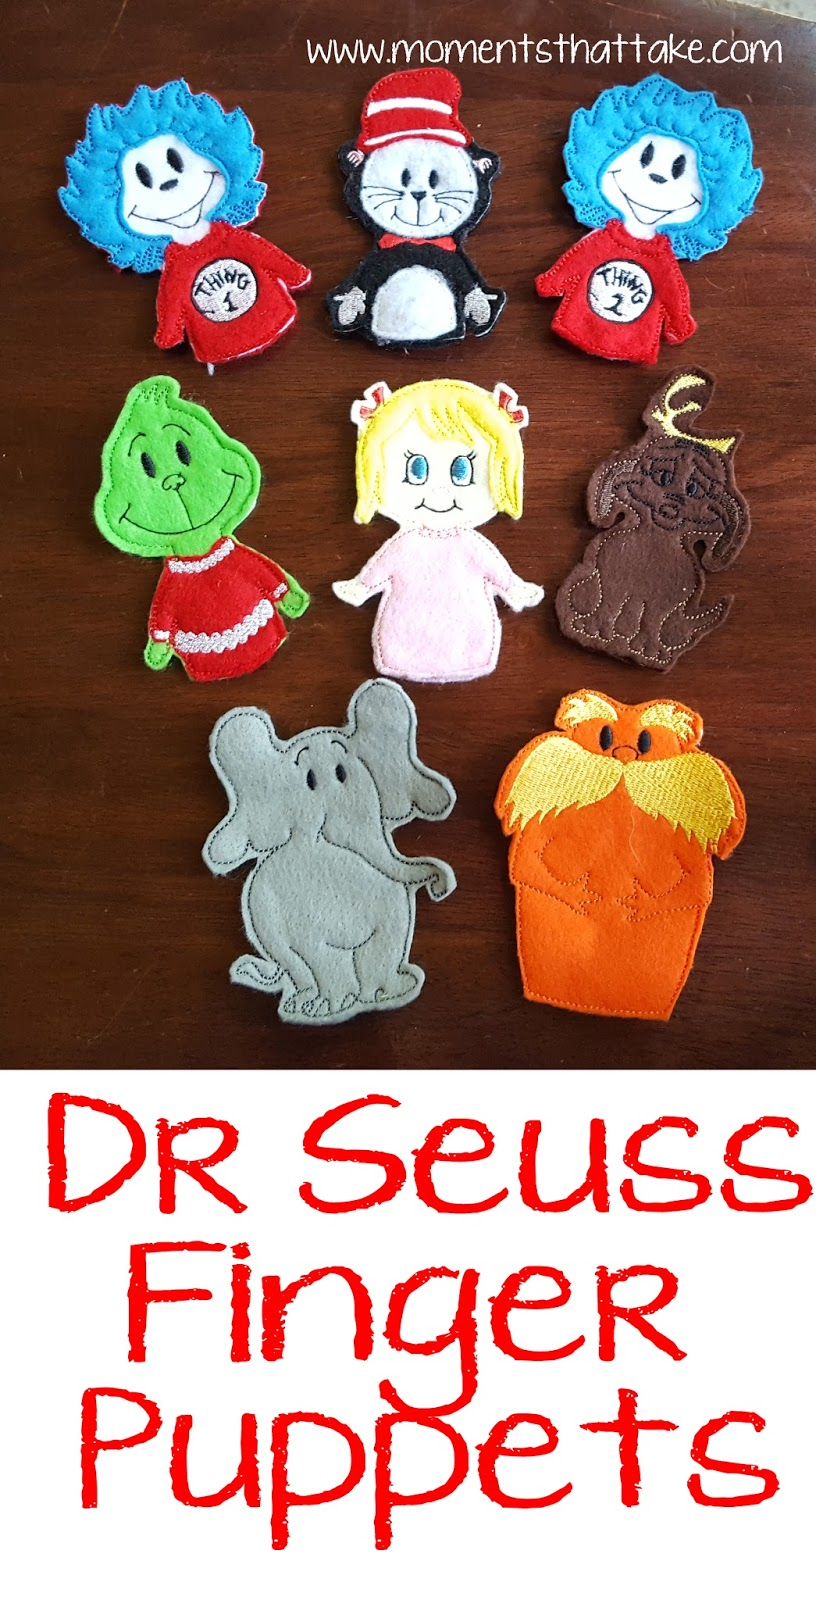 Moments That Take My Breath Away Dr Seuss Finger Puppets